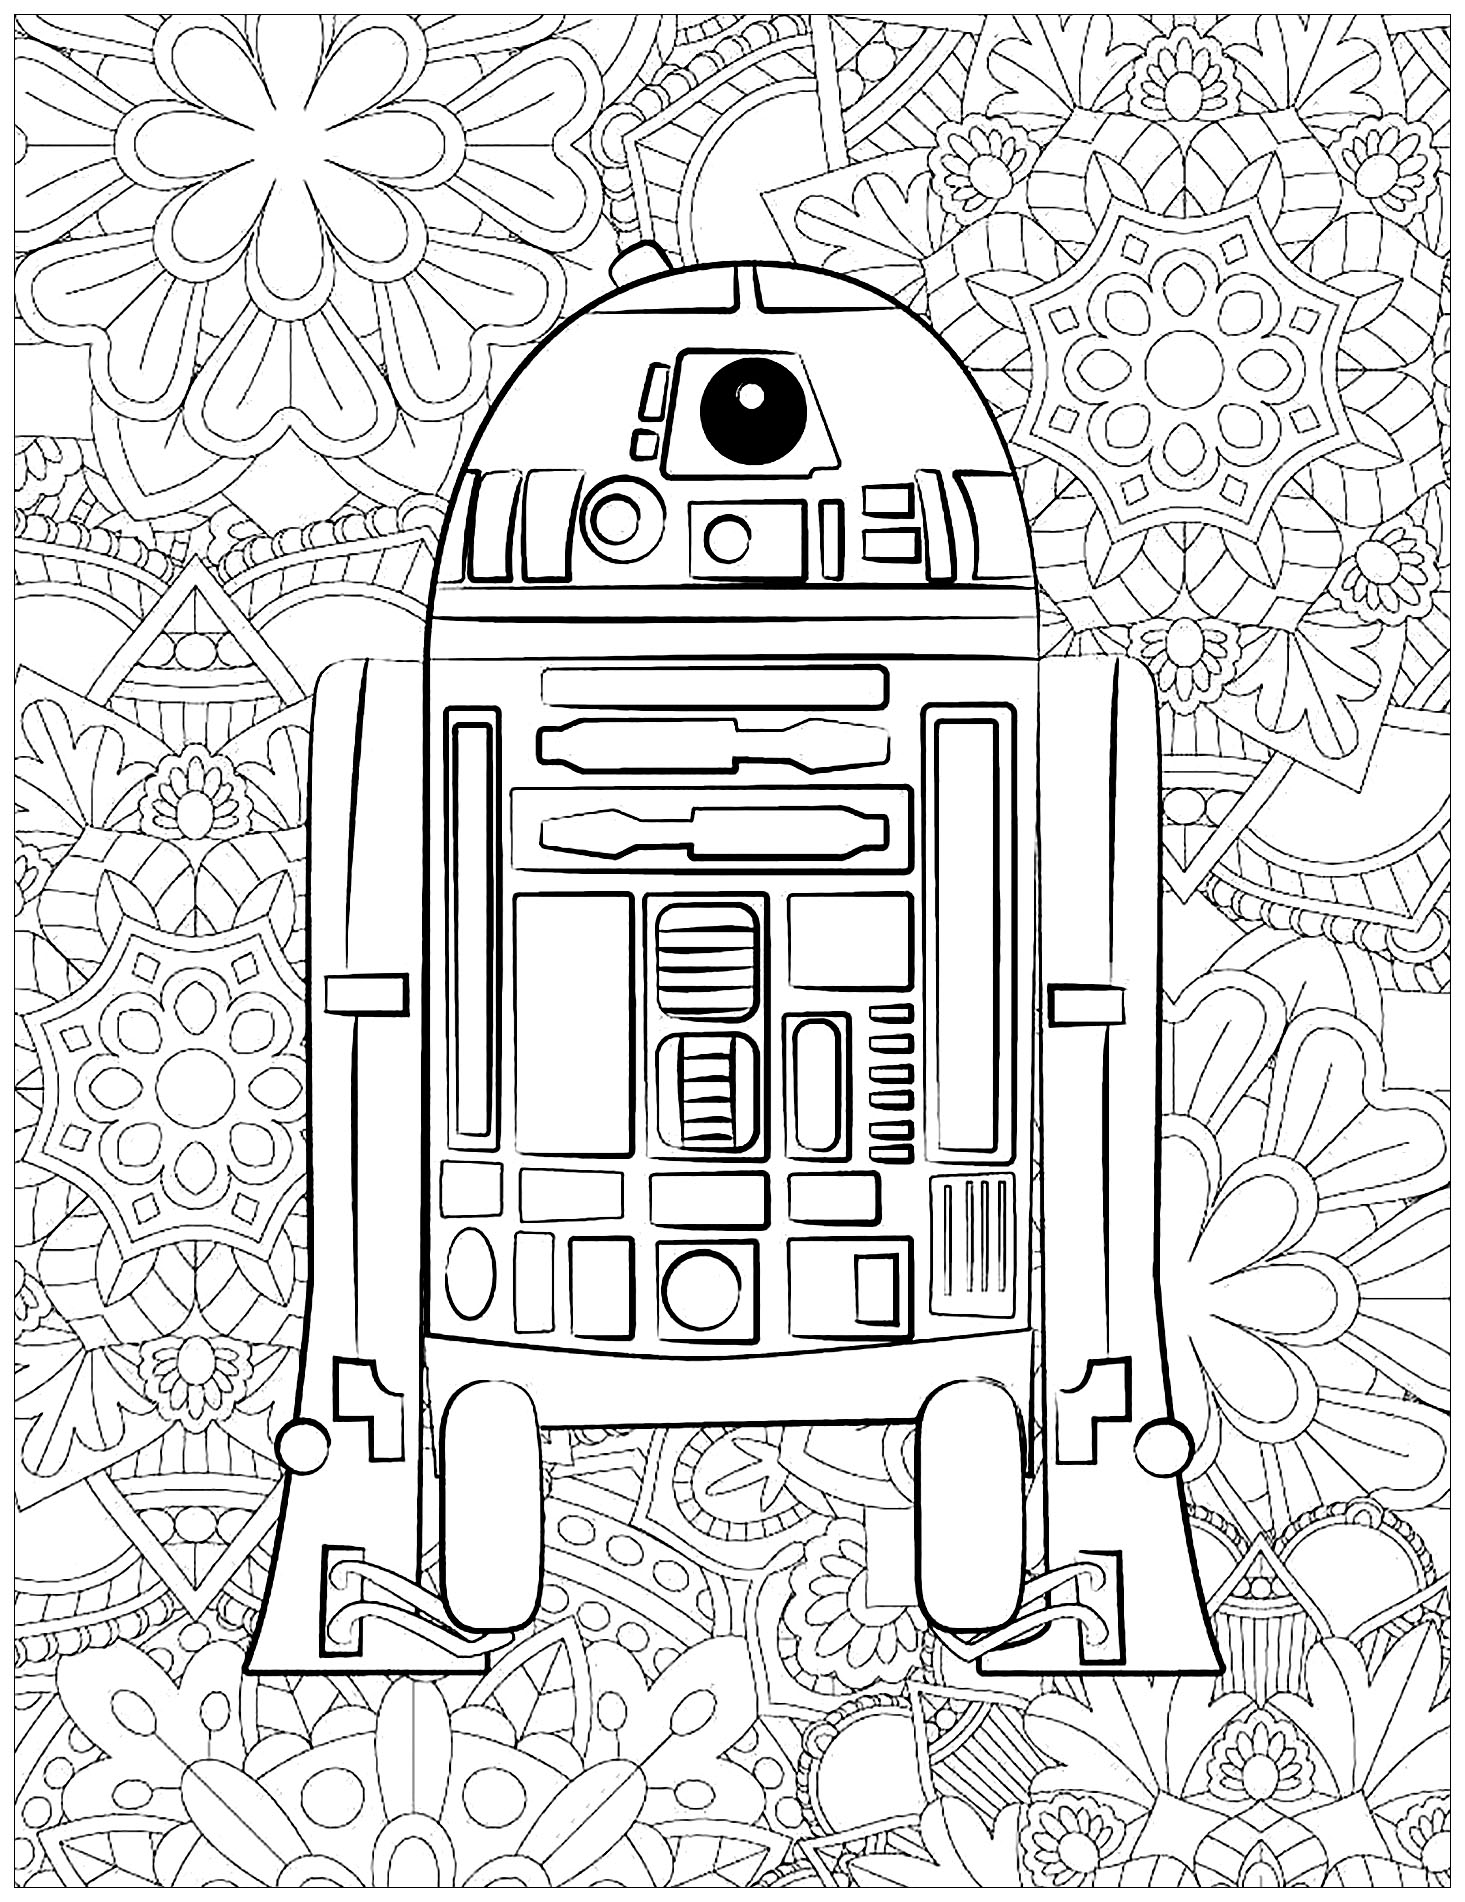 star wars coloring pages to print star wars free to color for kids star wars kids coloring to print wars star pages coloring